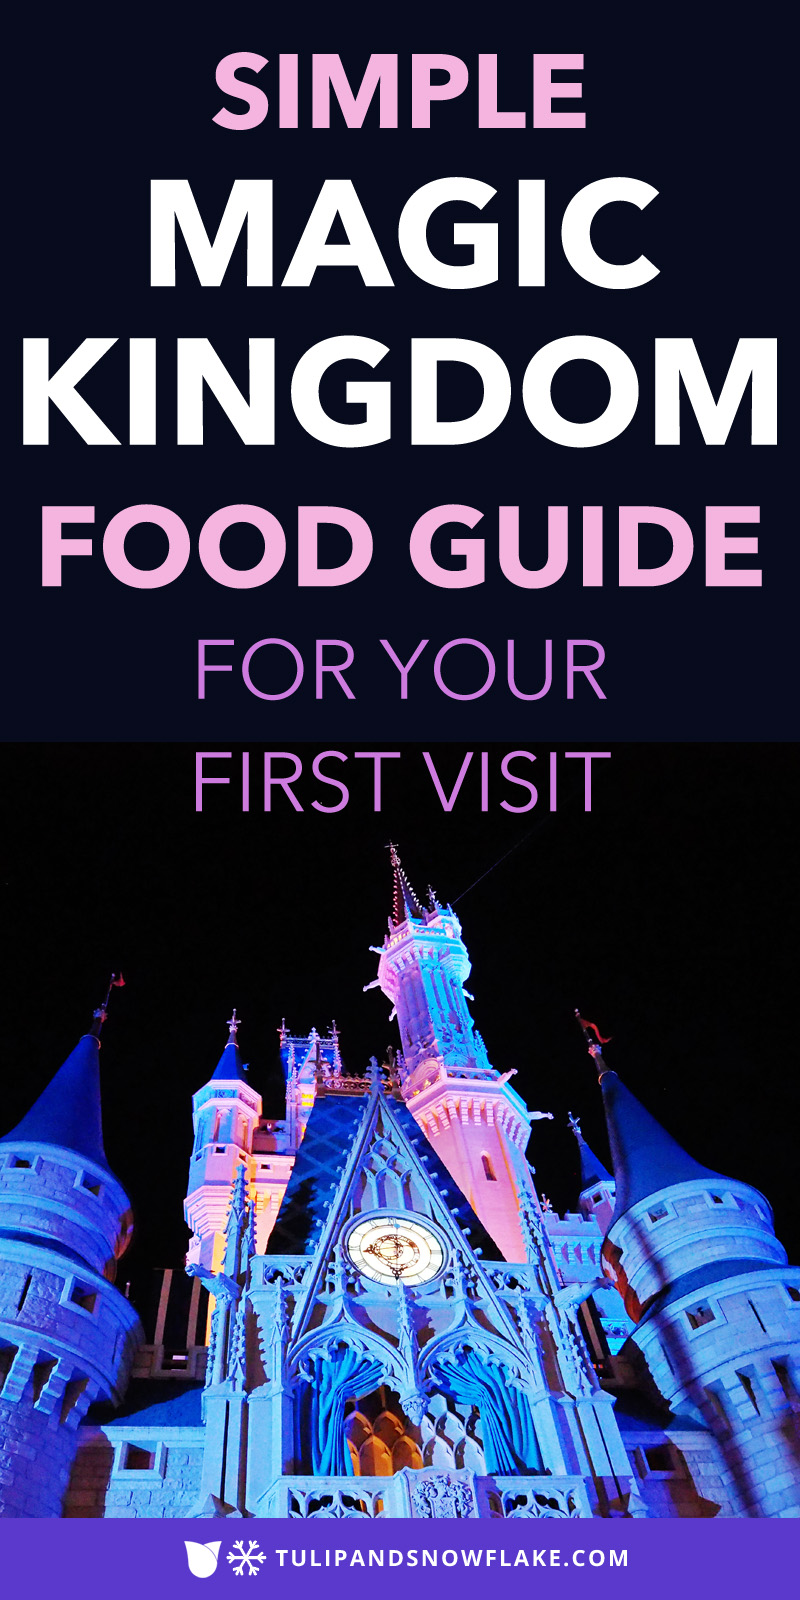 Magic Kingdom Food Guide